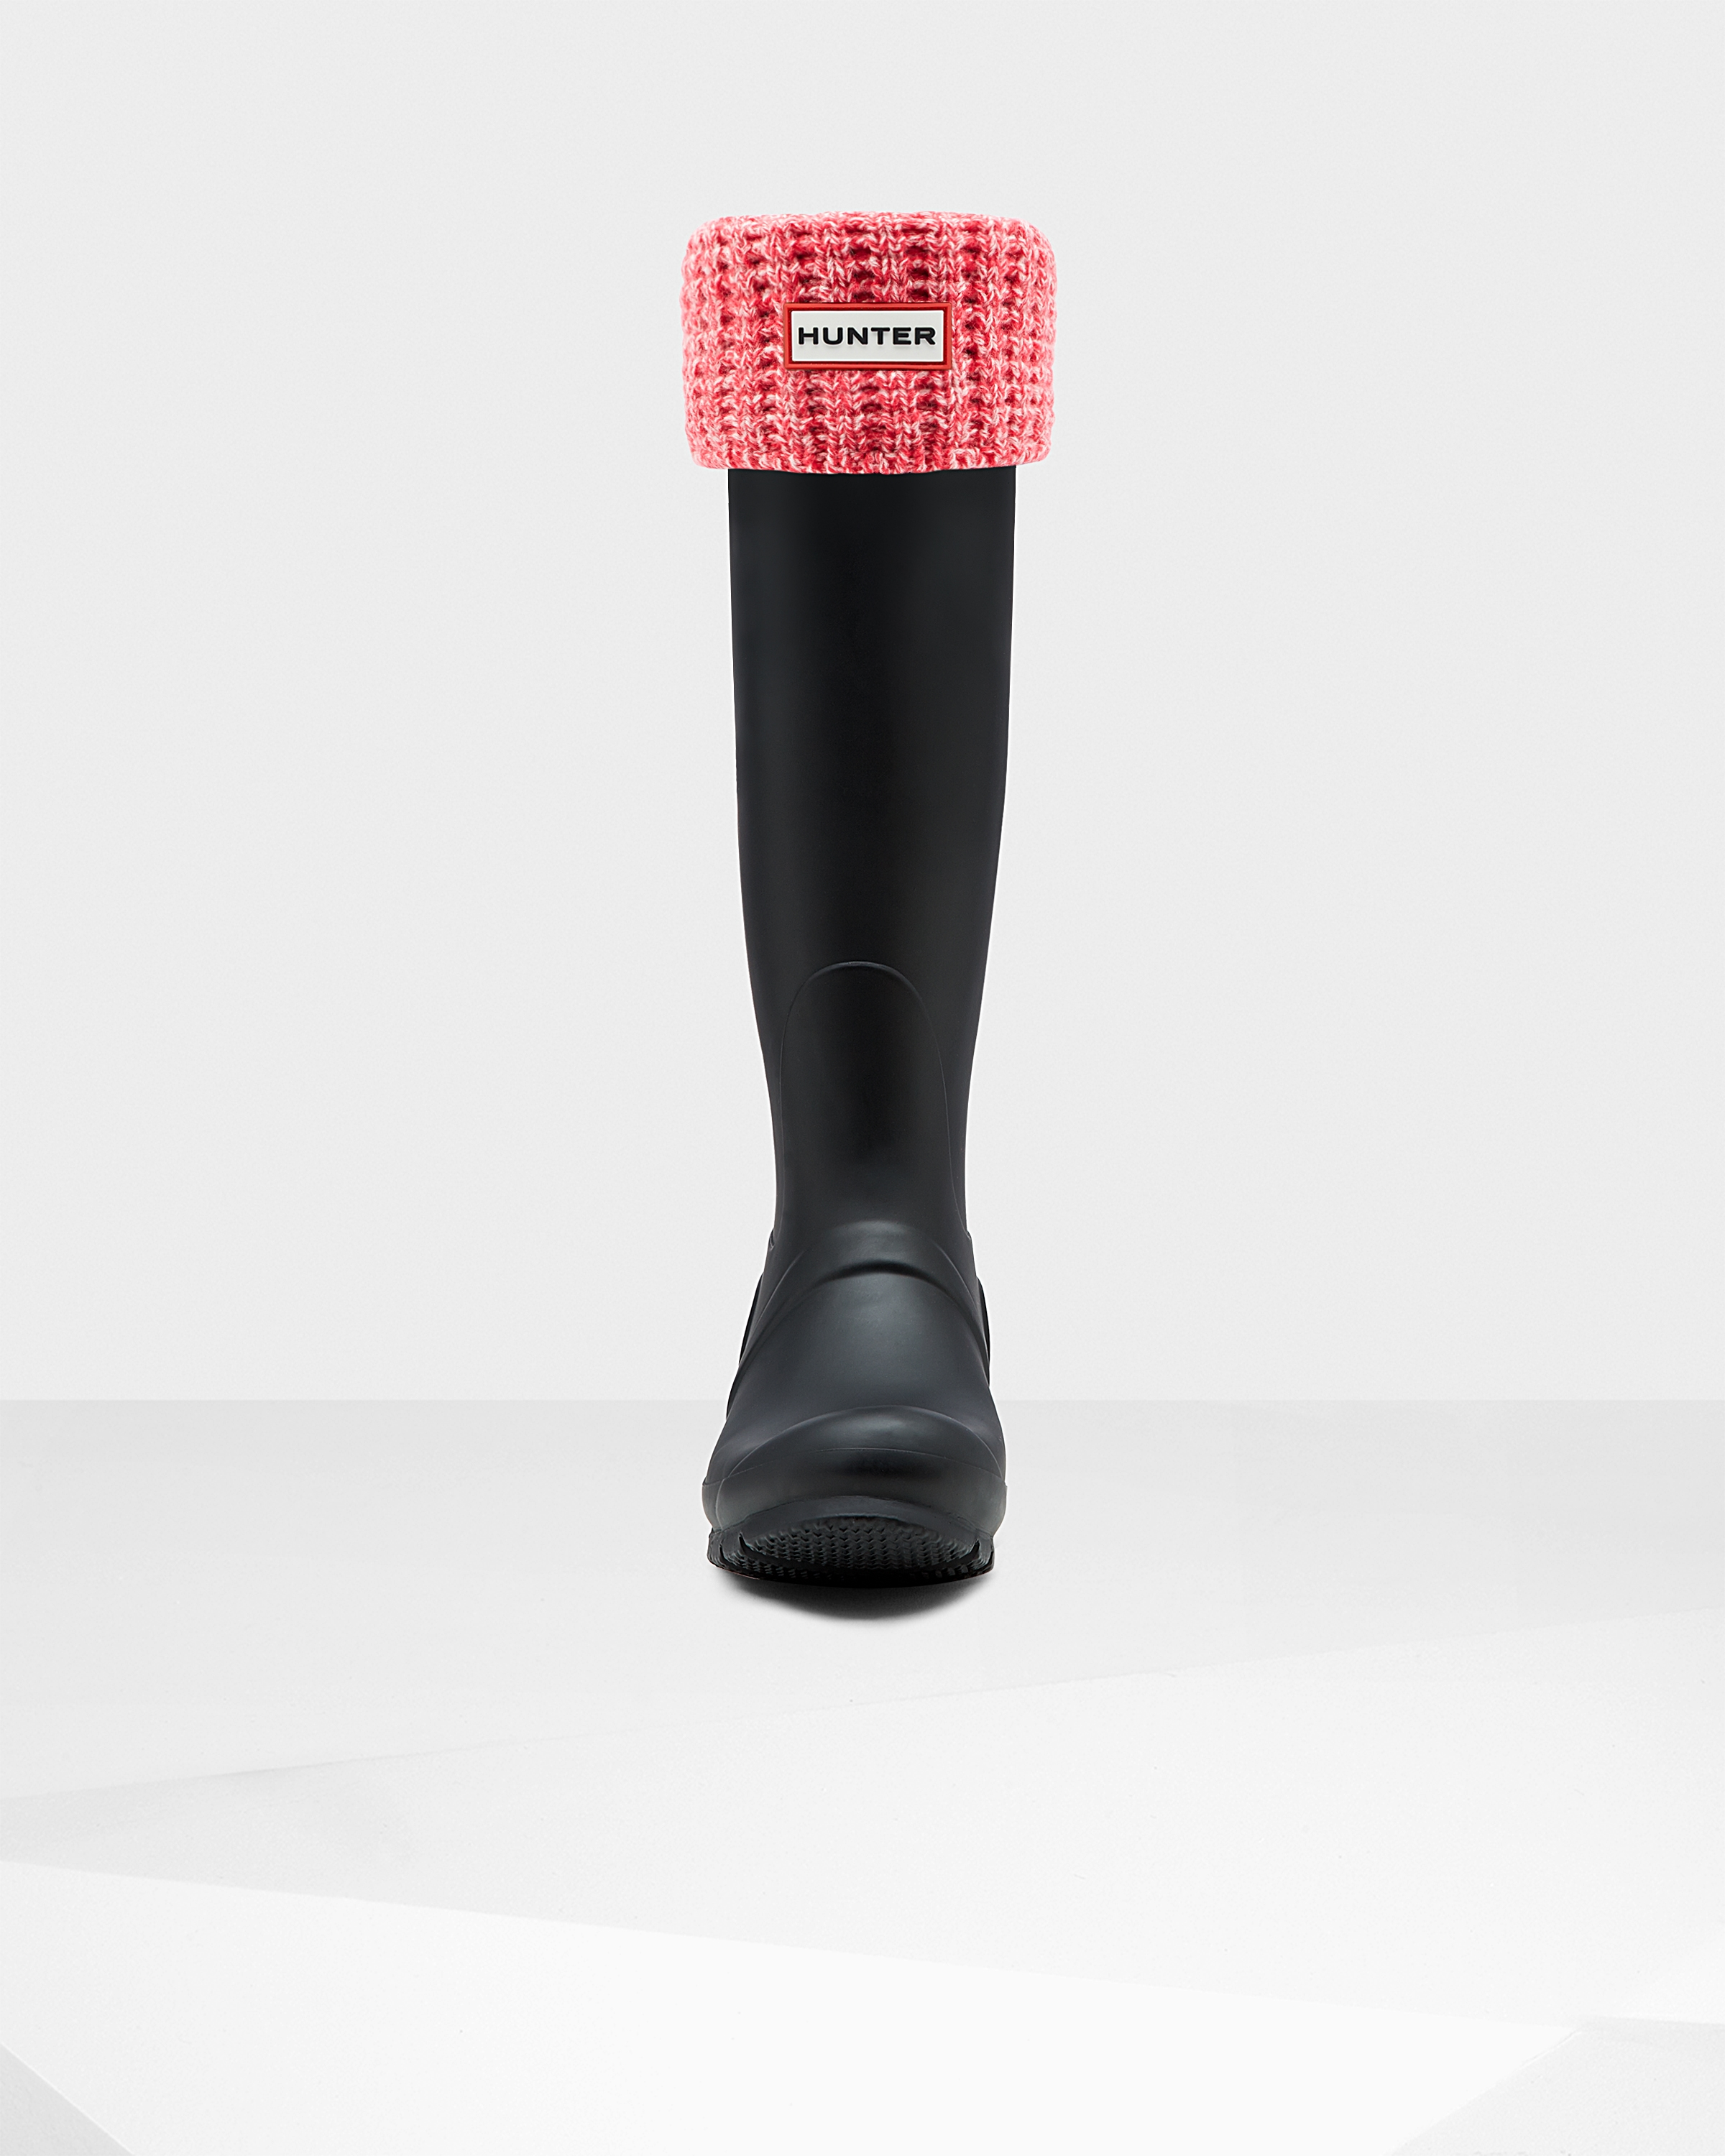 Original Waffle Cuff Tall Boot Socks: Pink/hunter White   Official Hunter Boots Store